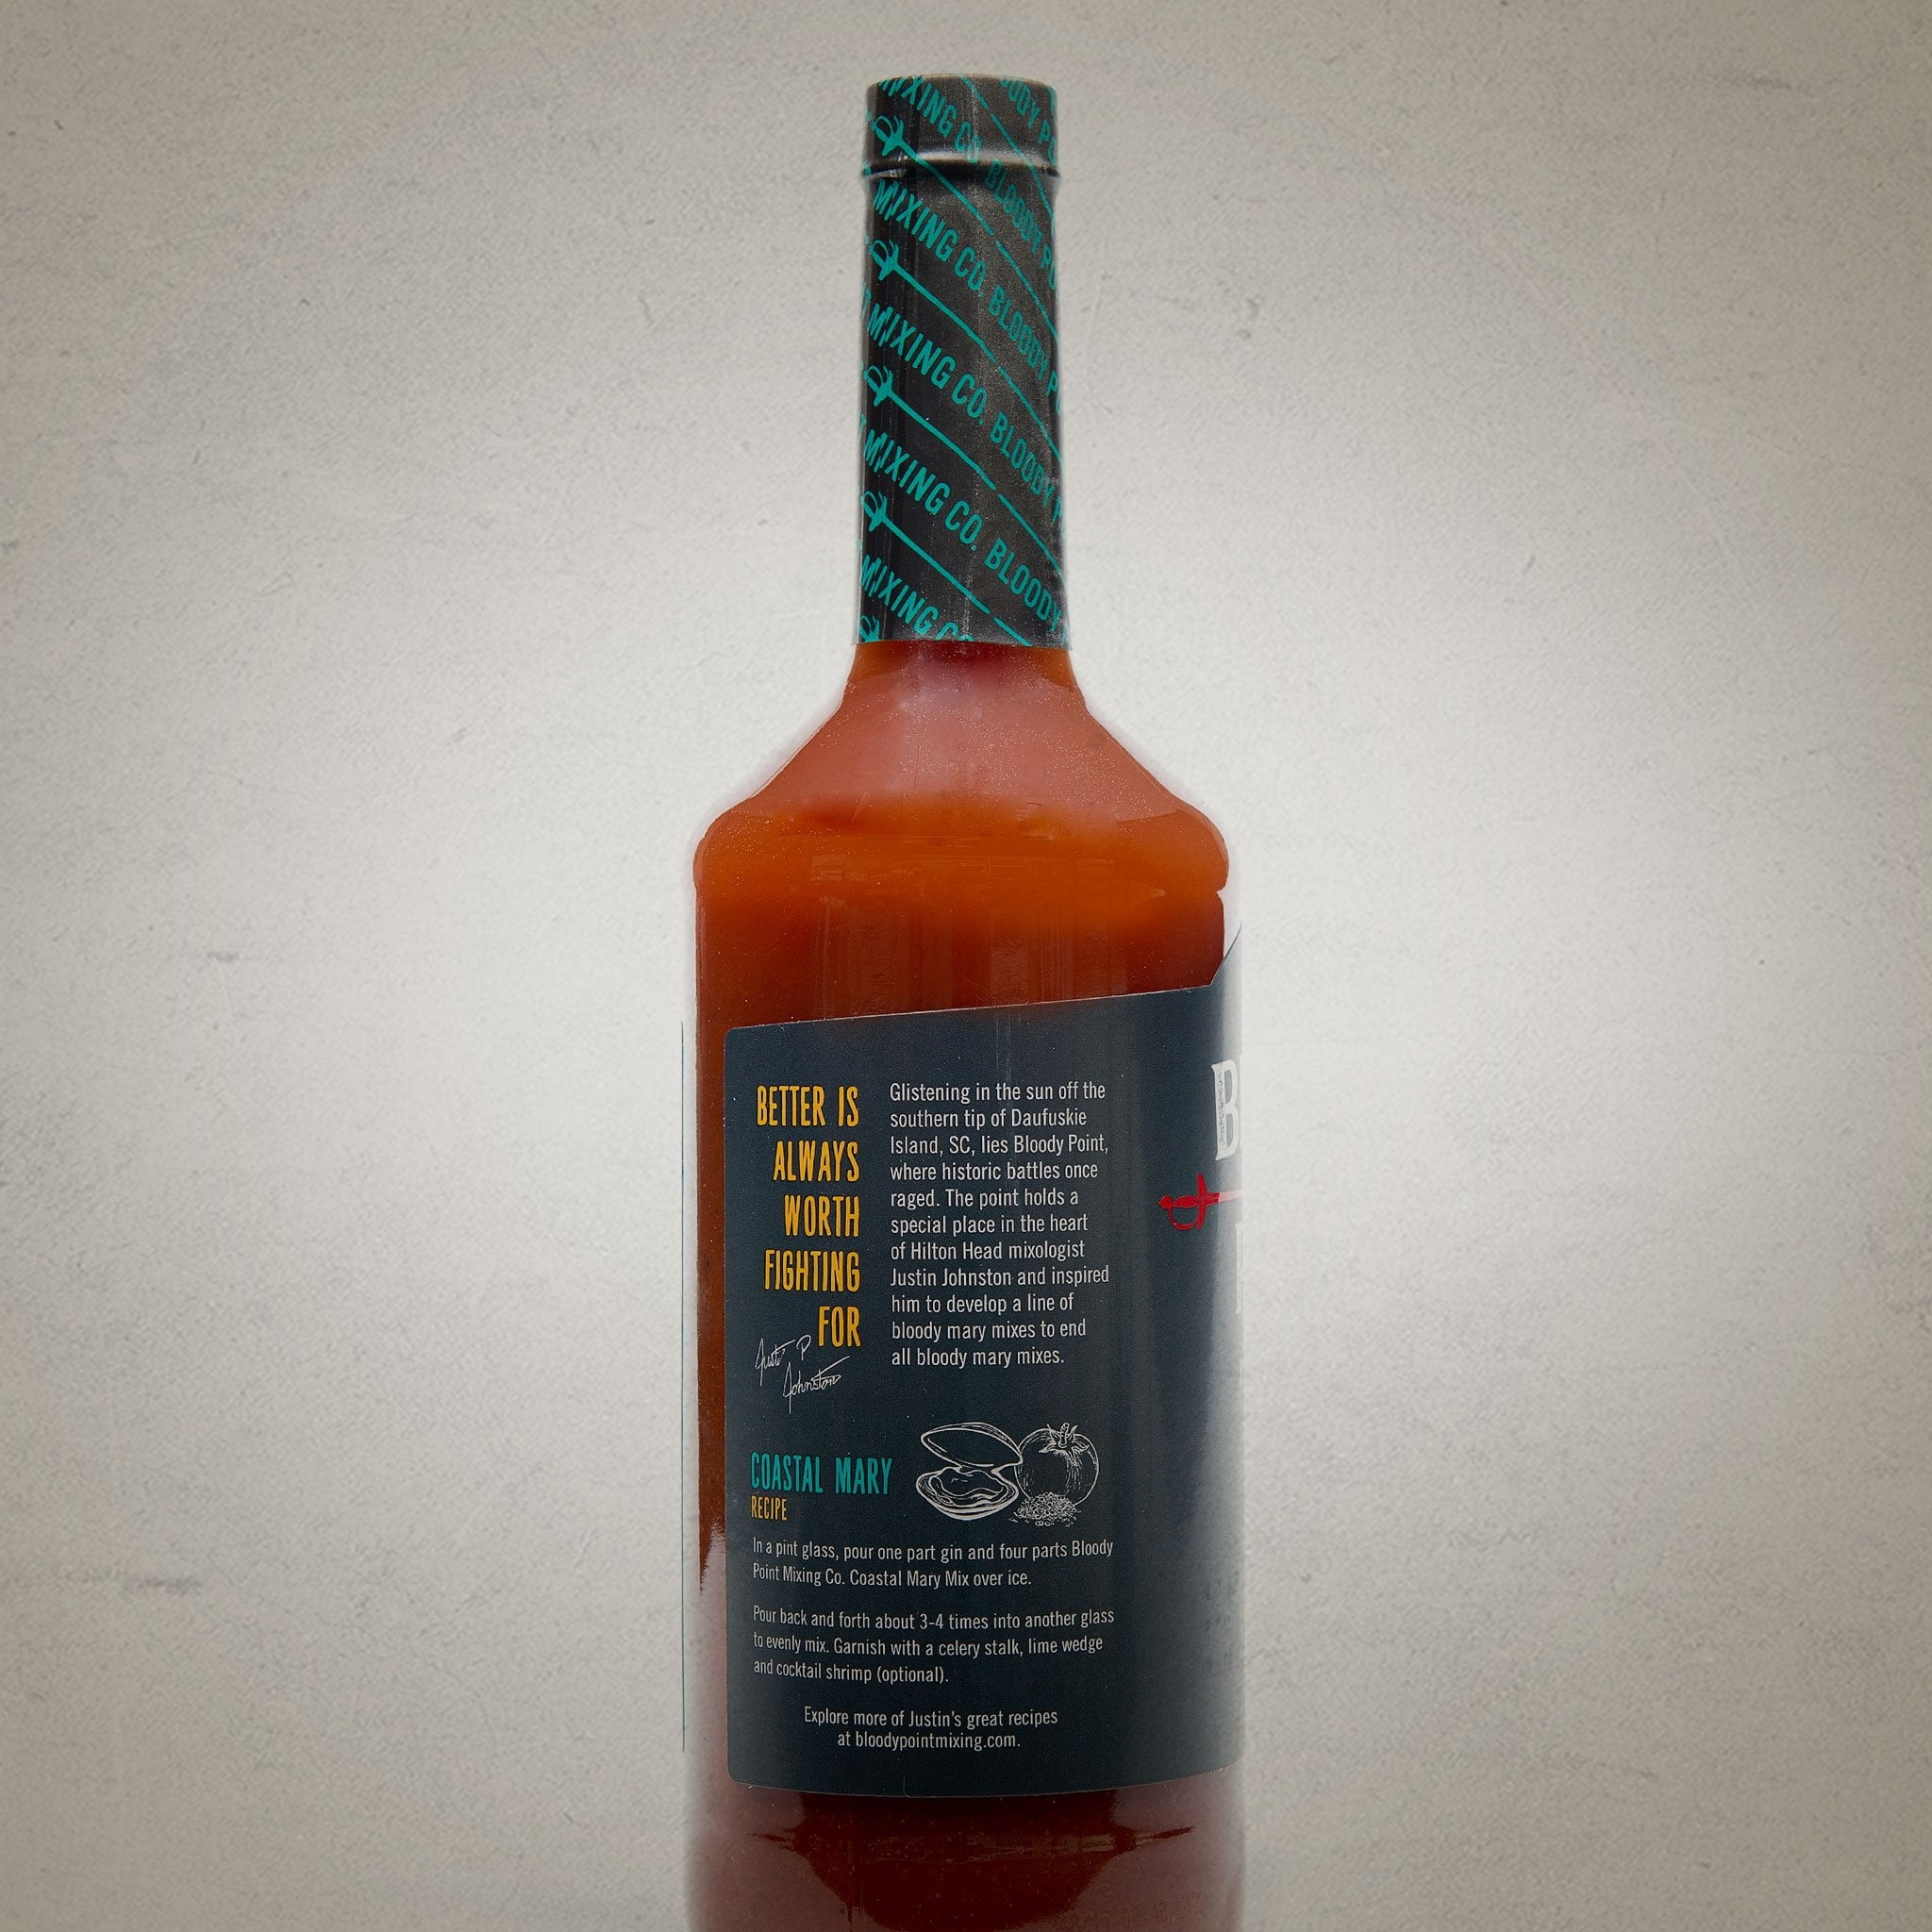 The Coastal Mary Back of Bottle